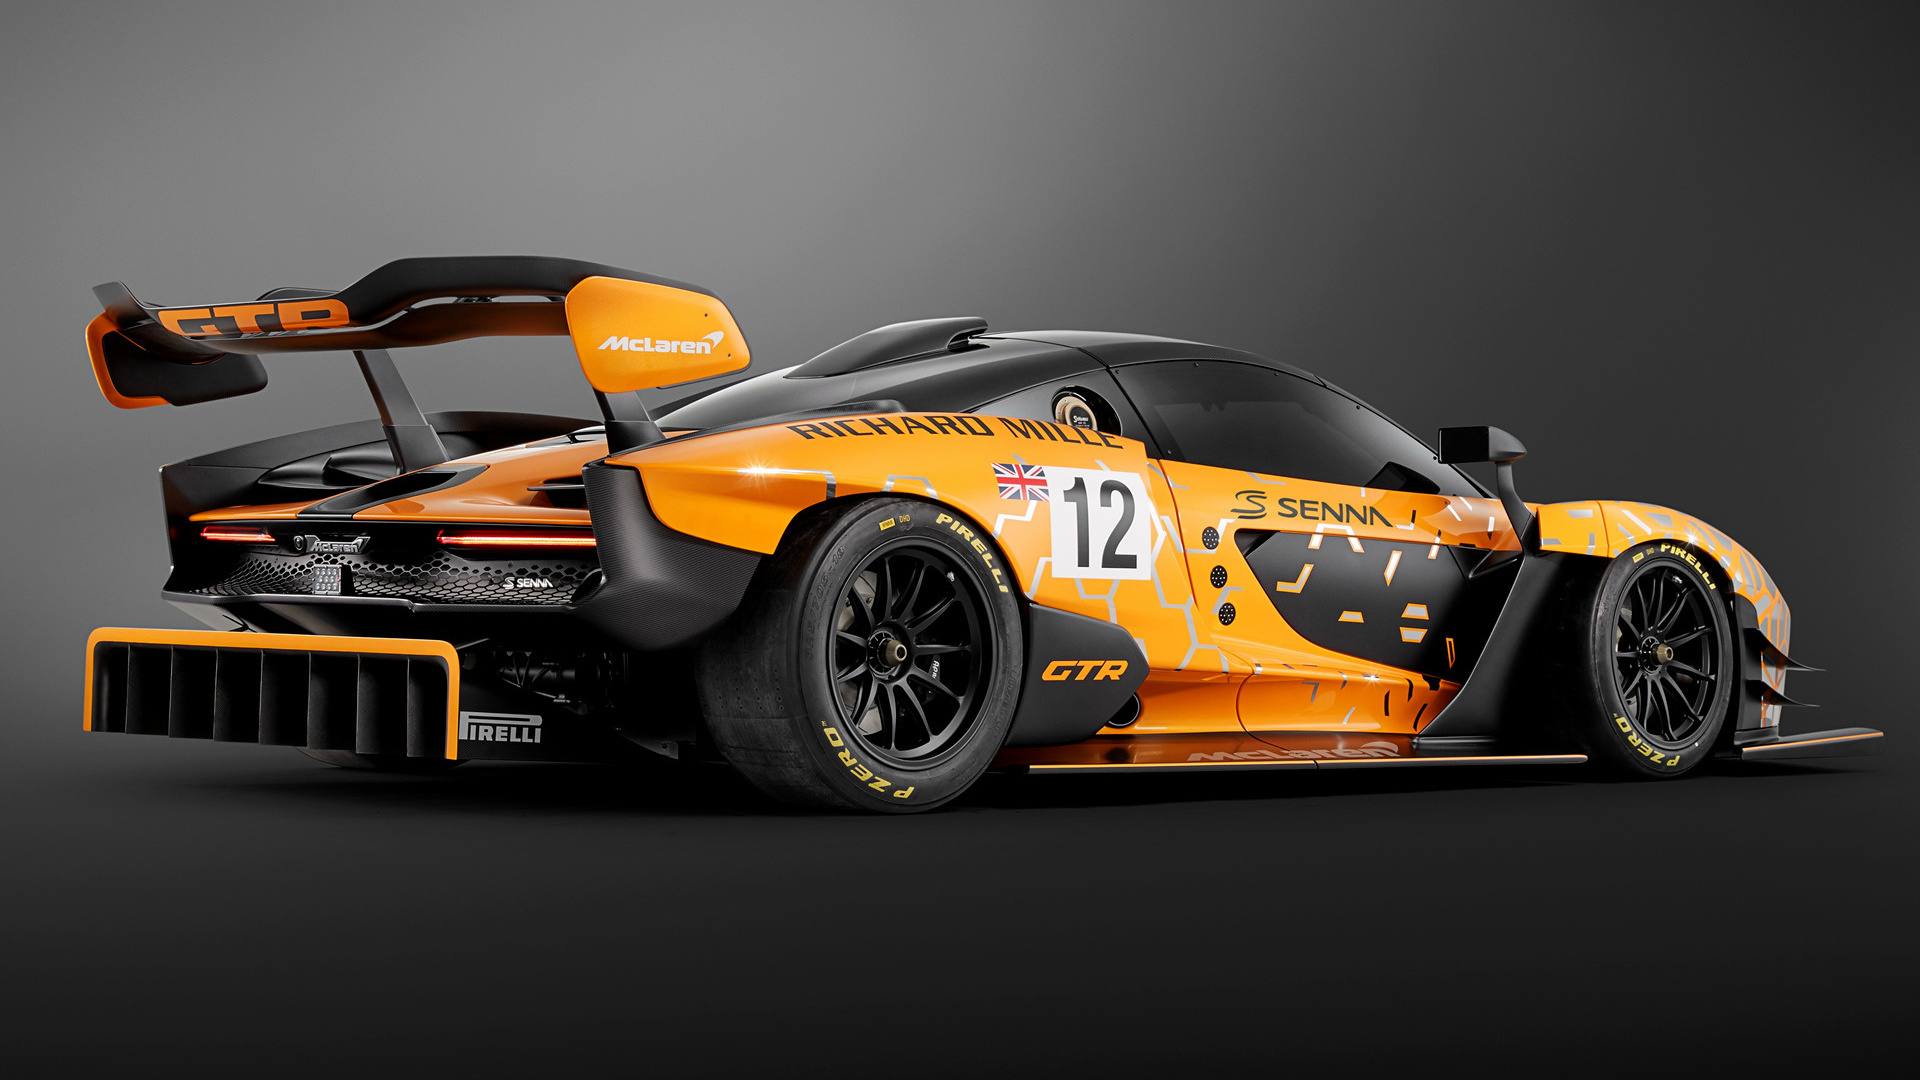 2018 Mclaren Senna Gtr Concept Wallpapers And Hd Images